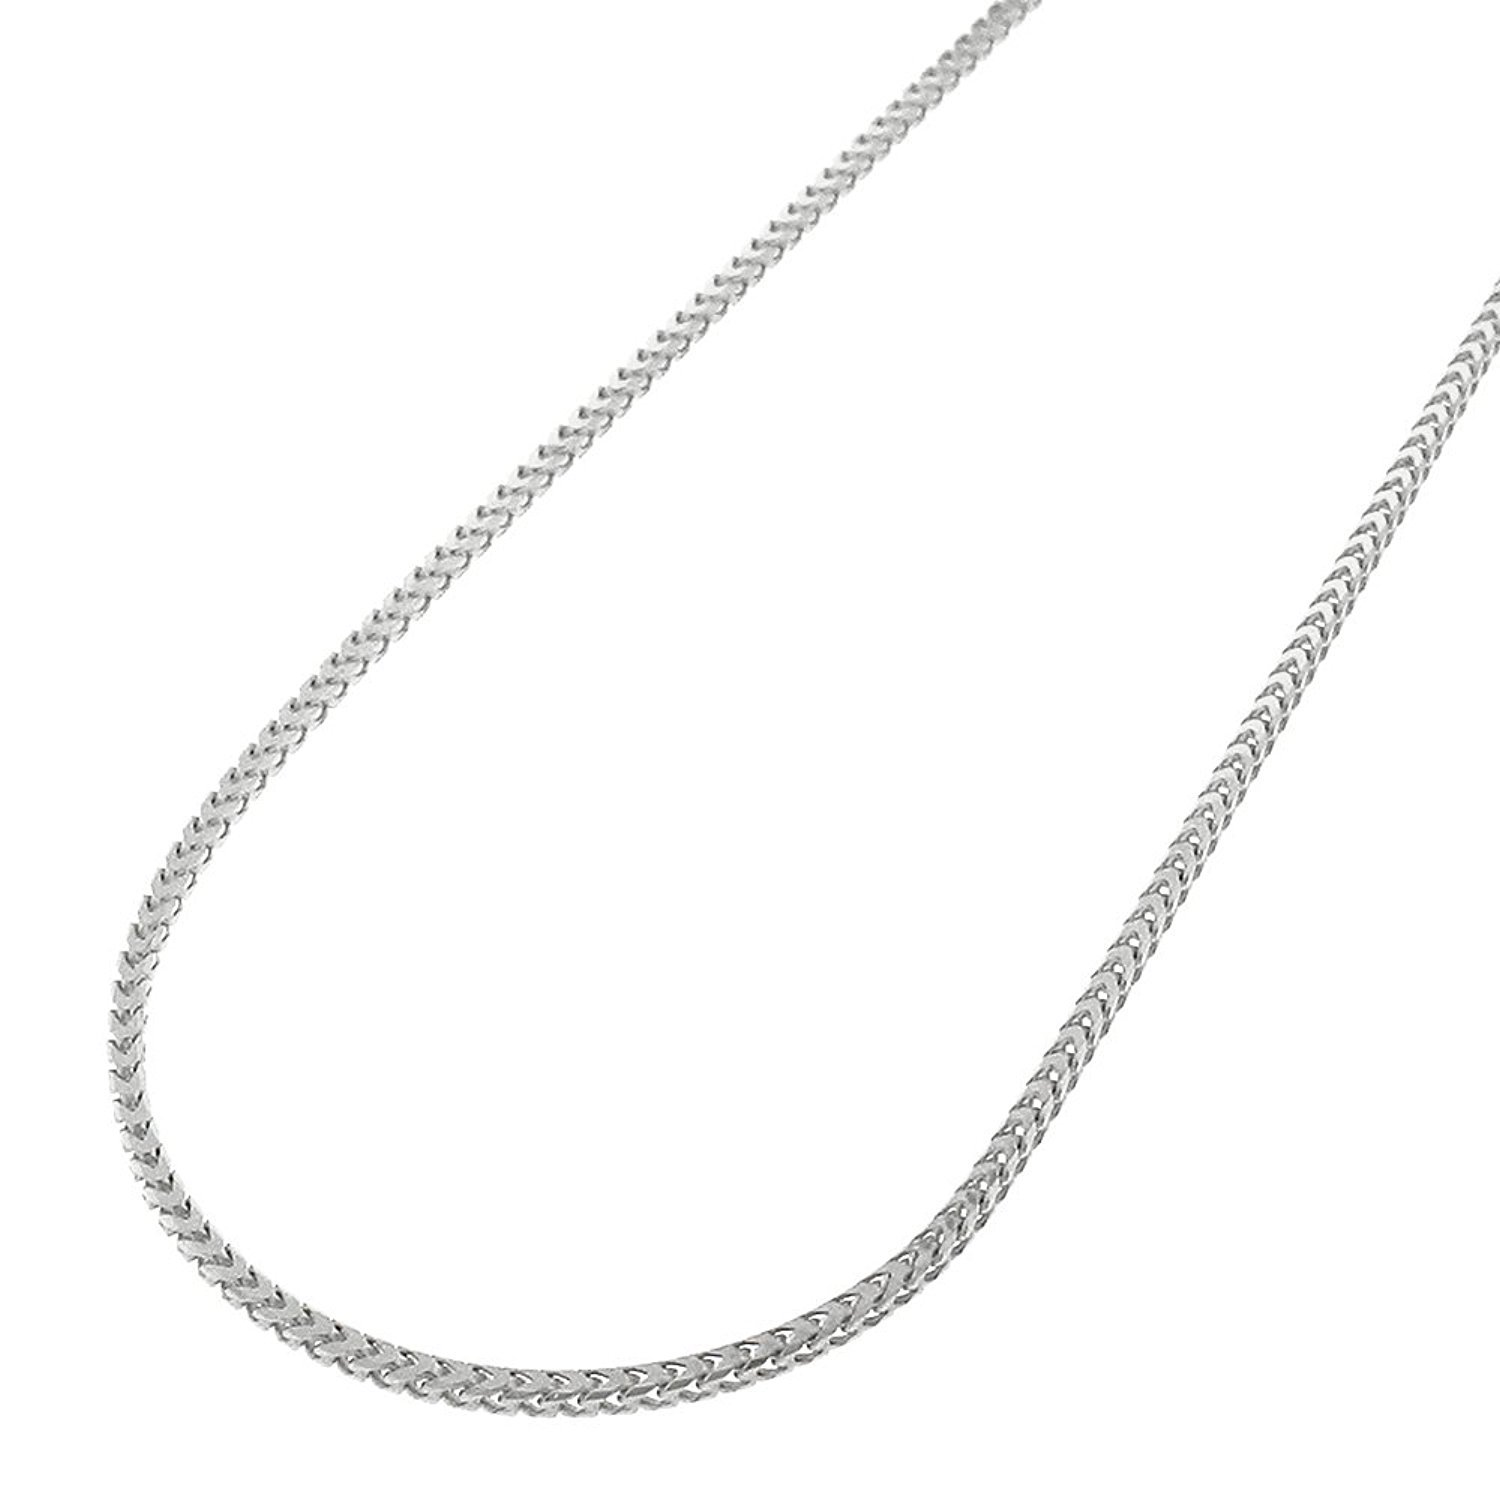 14k White Gold 1mm Solid Franco Square Box Link Necklace Chain 16'' - 24'' (20)